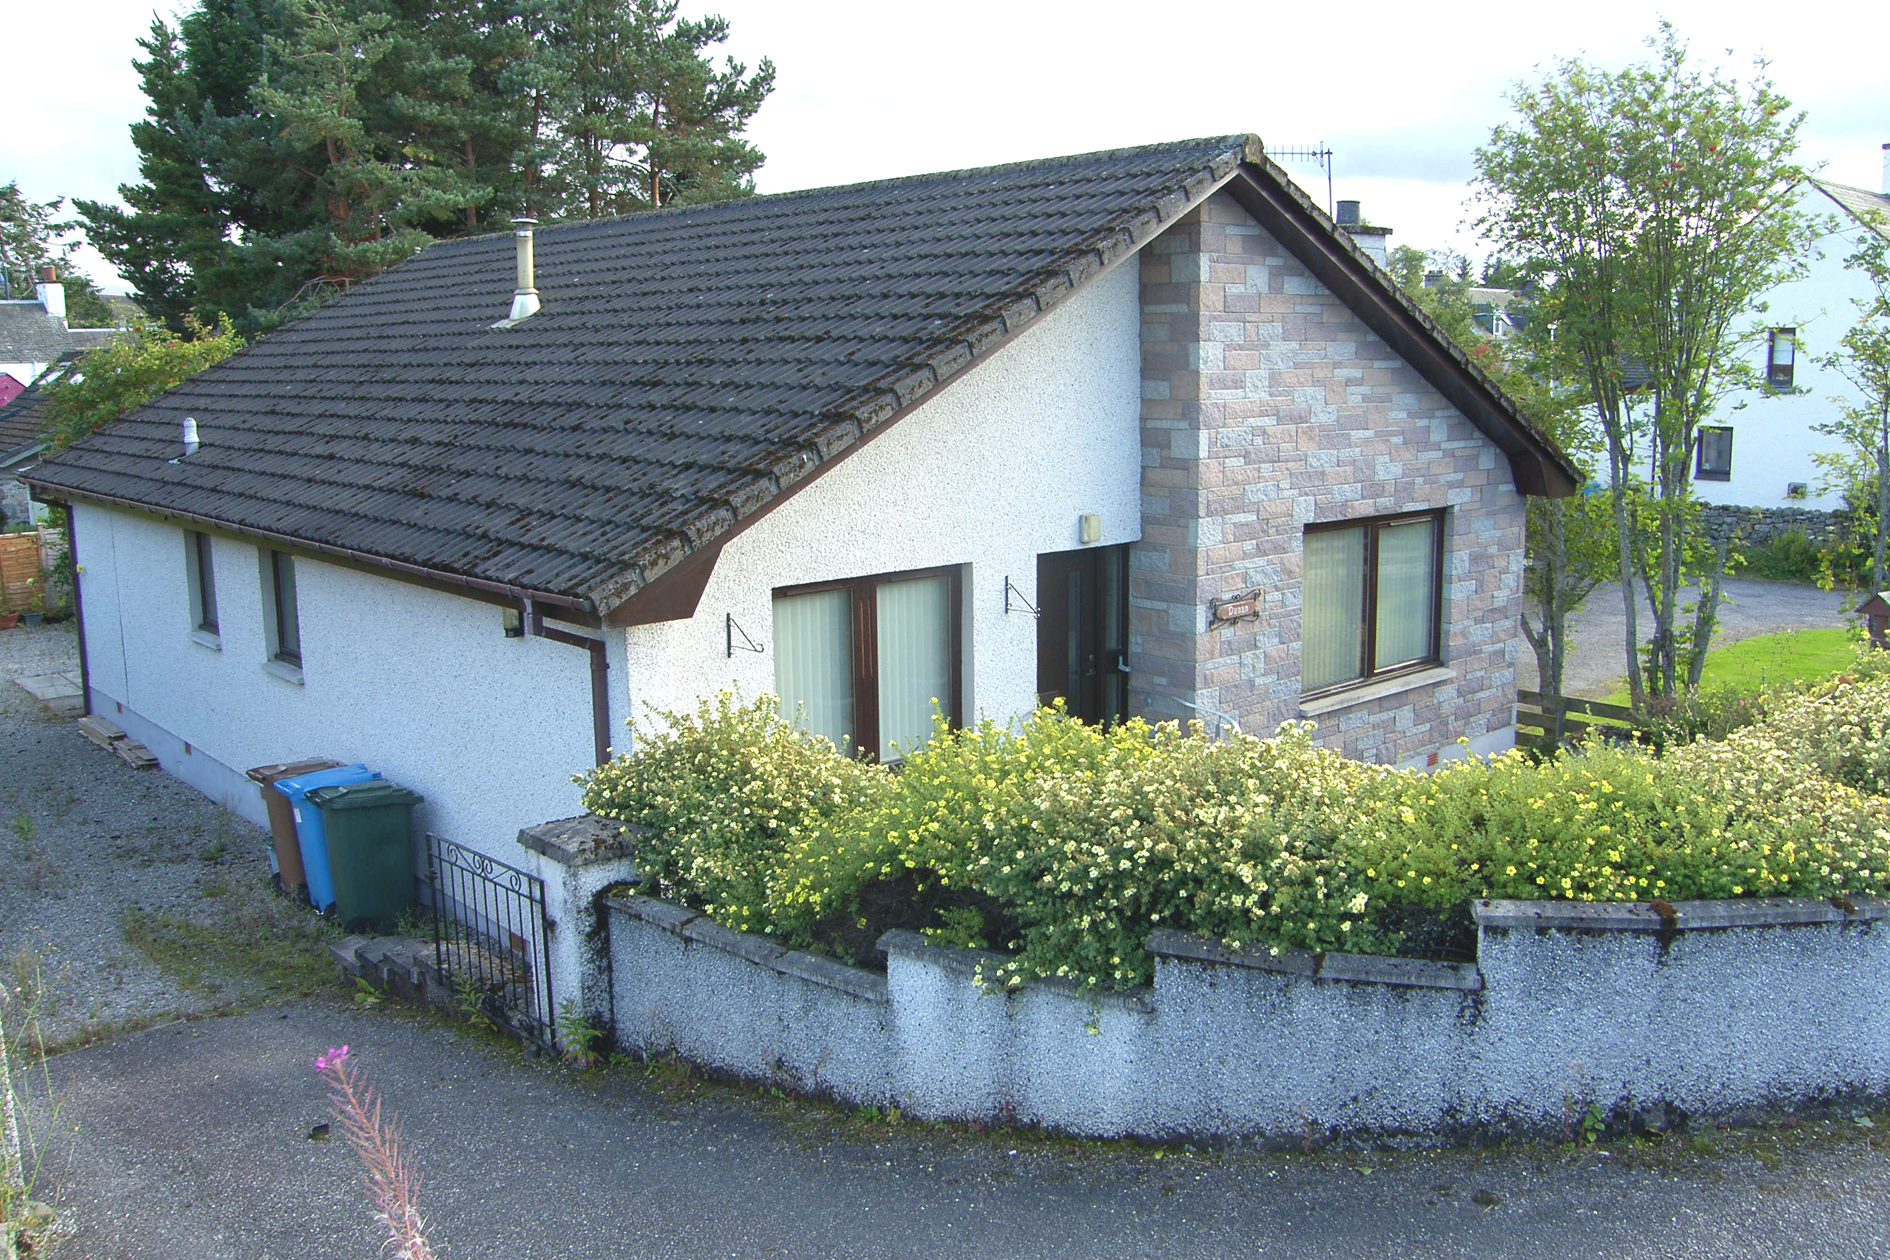 3 Bedrooms Bungalow for sale in Newtonmore, PH20 1ED